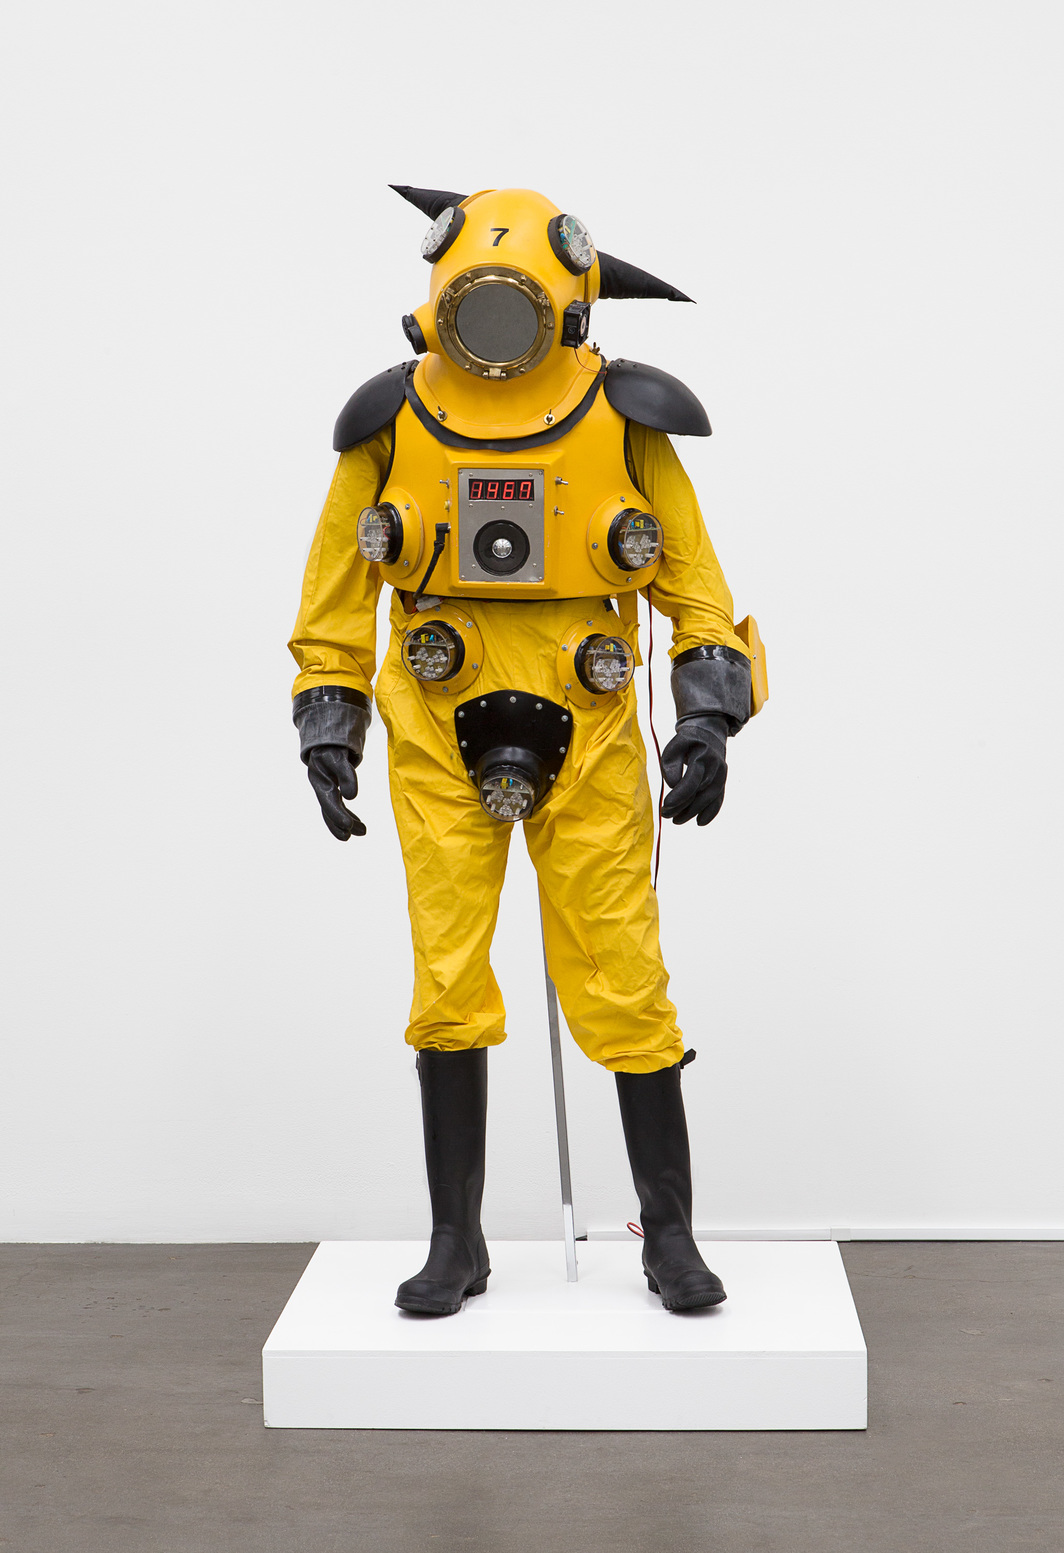 "Kenji Yanobe, Atom Suit, 1987, Geiger counter, PVC, strobe light, mixed media, 71 x 30 3/4 x 23 1/8""."